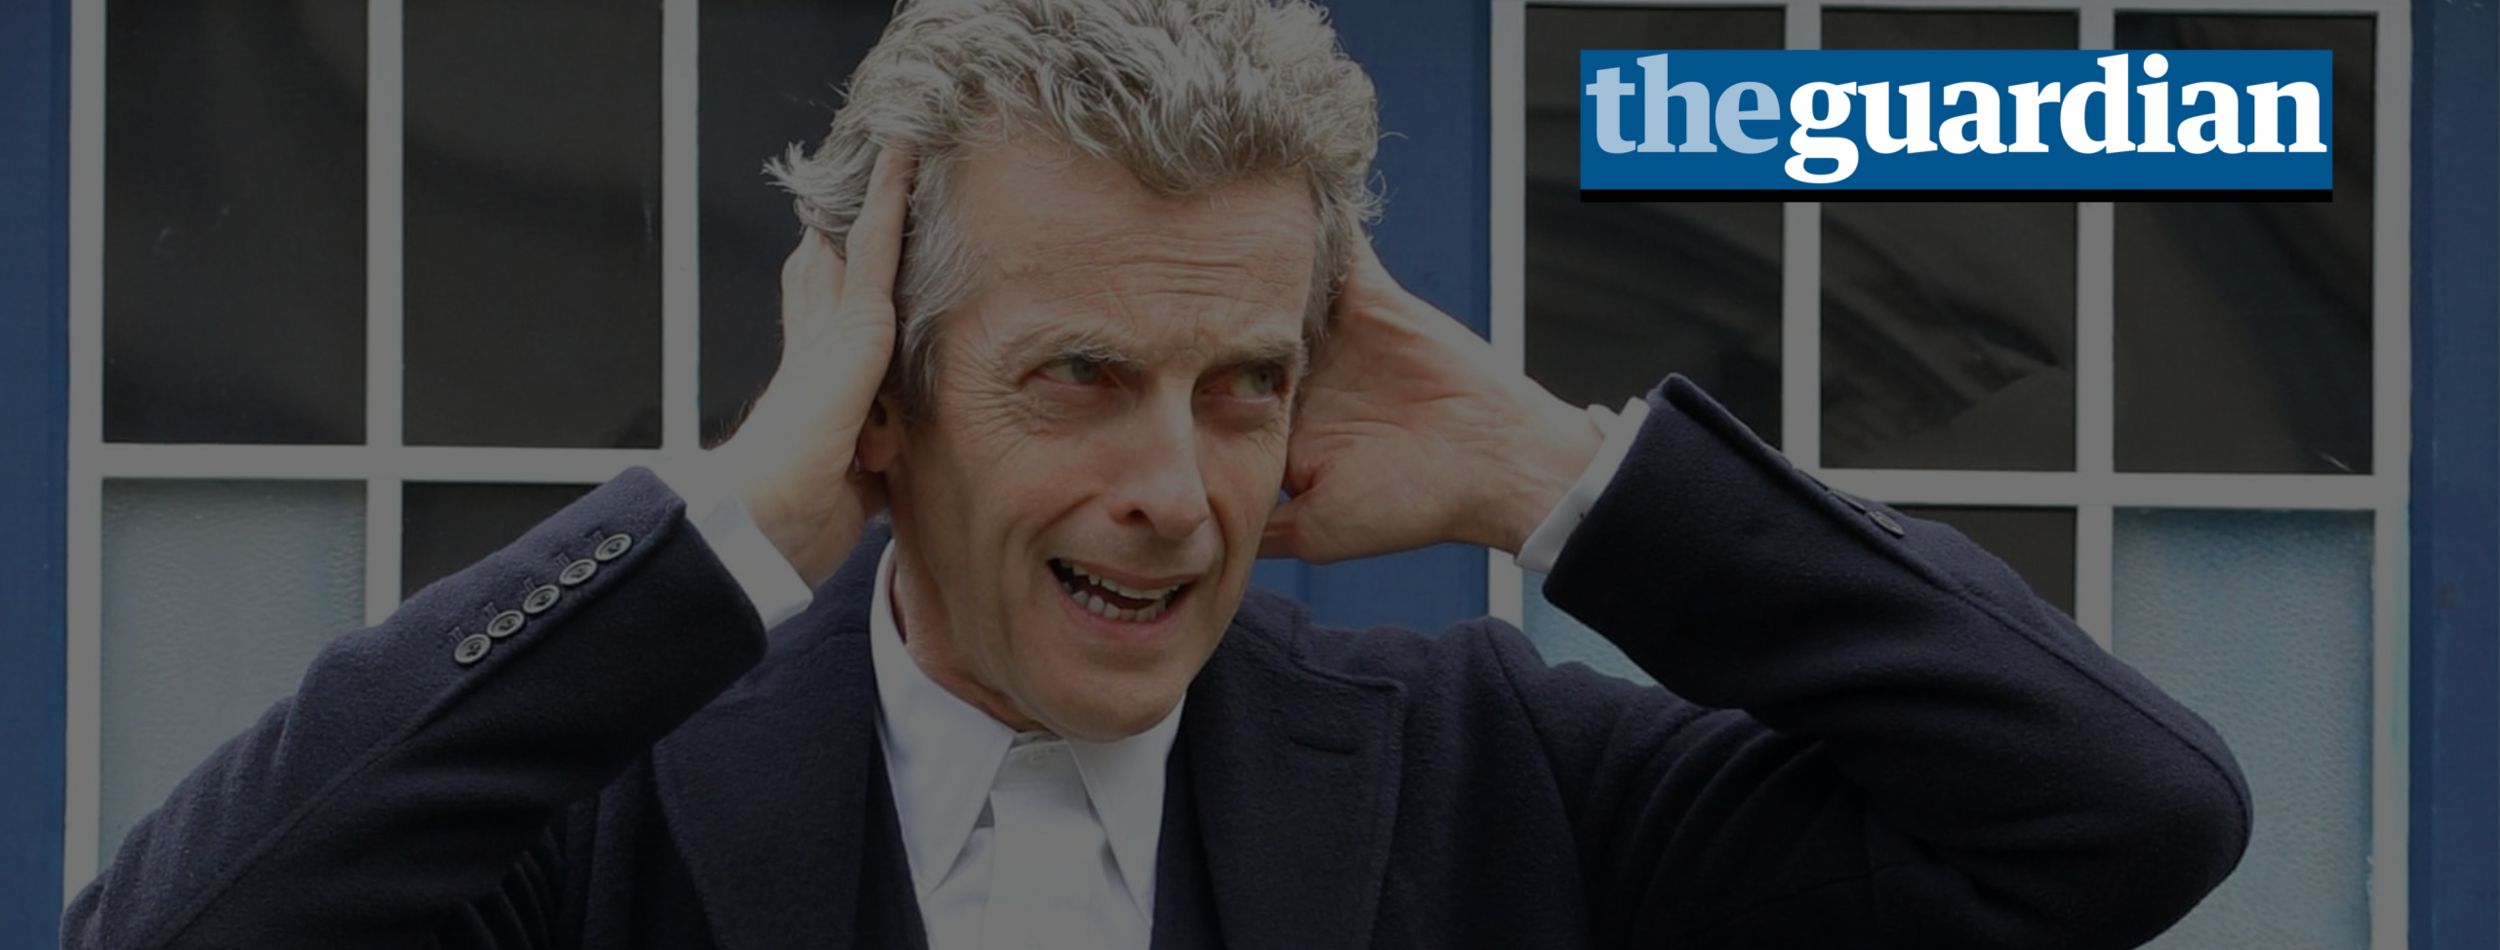 """Featured in The Guardian - As one of the """"best conventions for U.S. Whovians""""."""